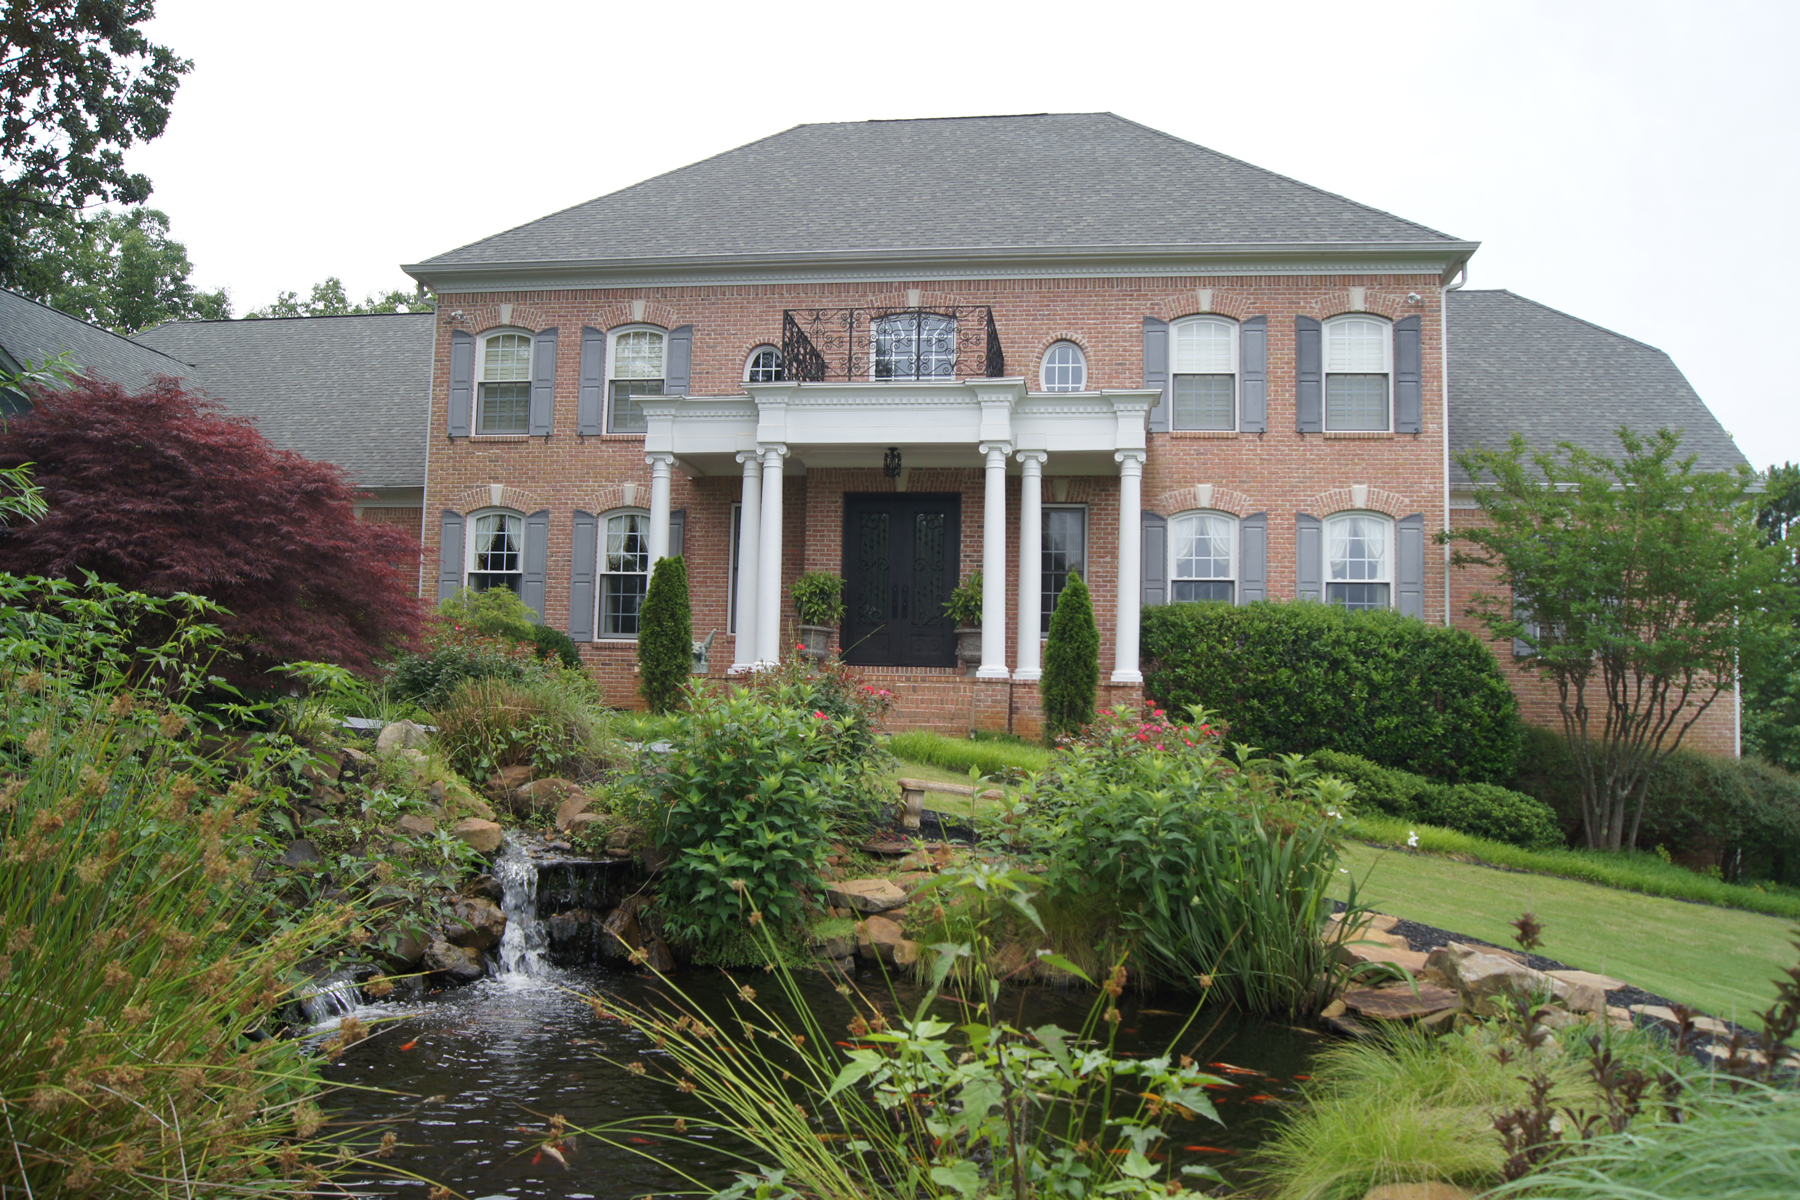 Single Family Home for Active at Private Gated Community 28 Hawks Branch Lane White, Georgia 30184 United States